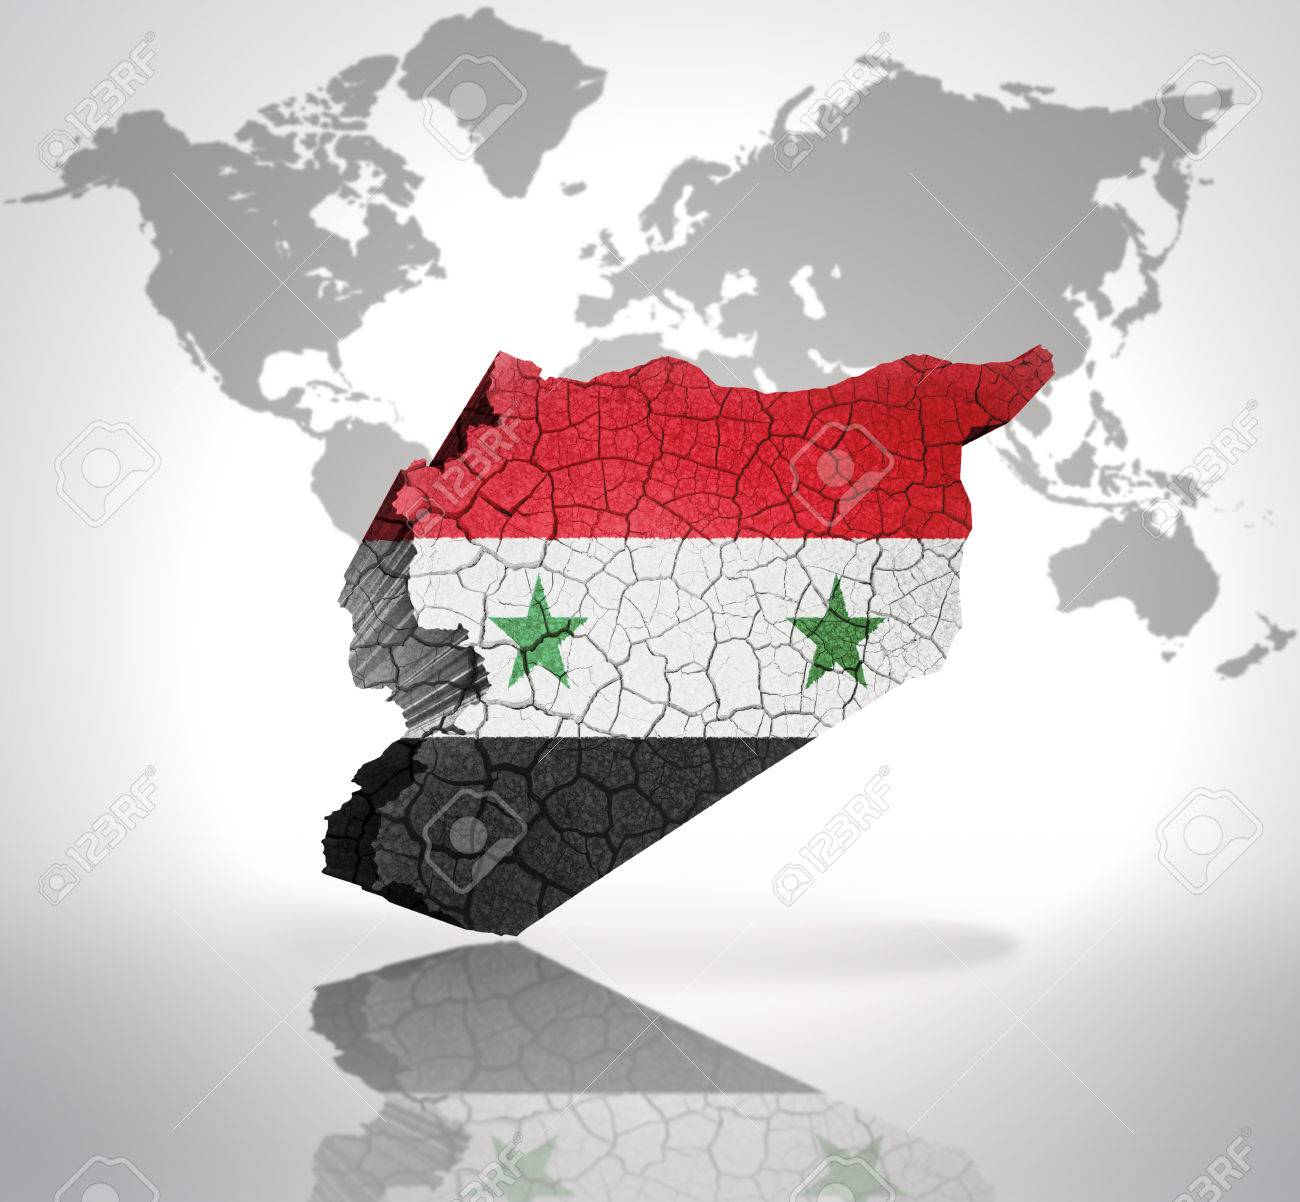 Map Of Syria With Syrian Flag On A World Map Background Stock - Syria world map